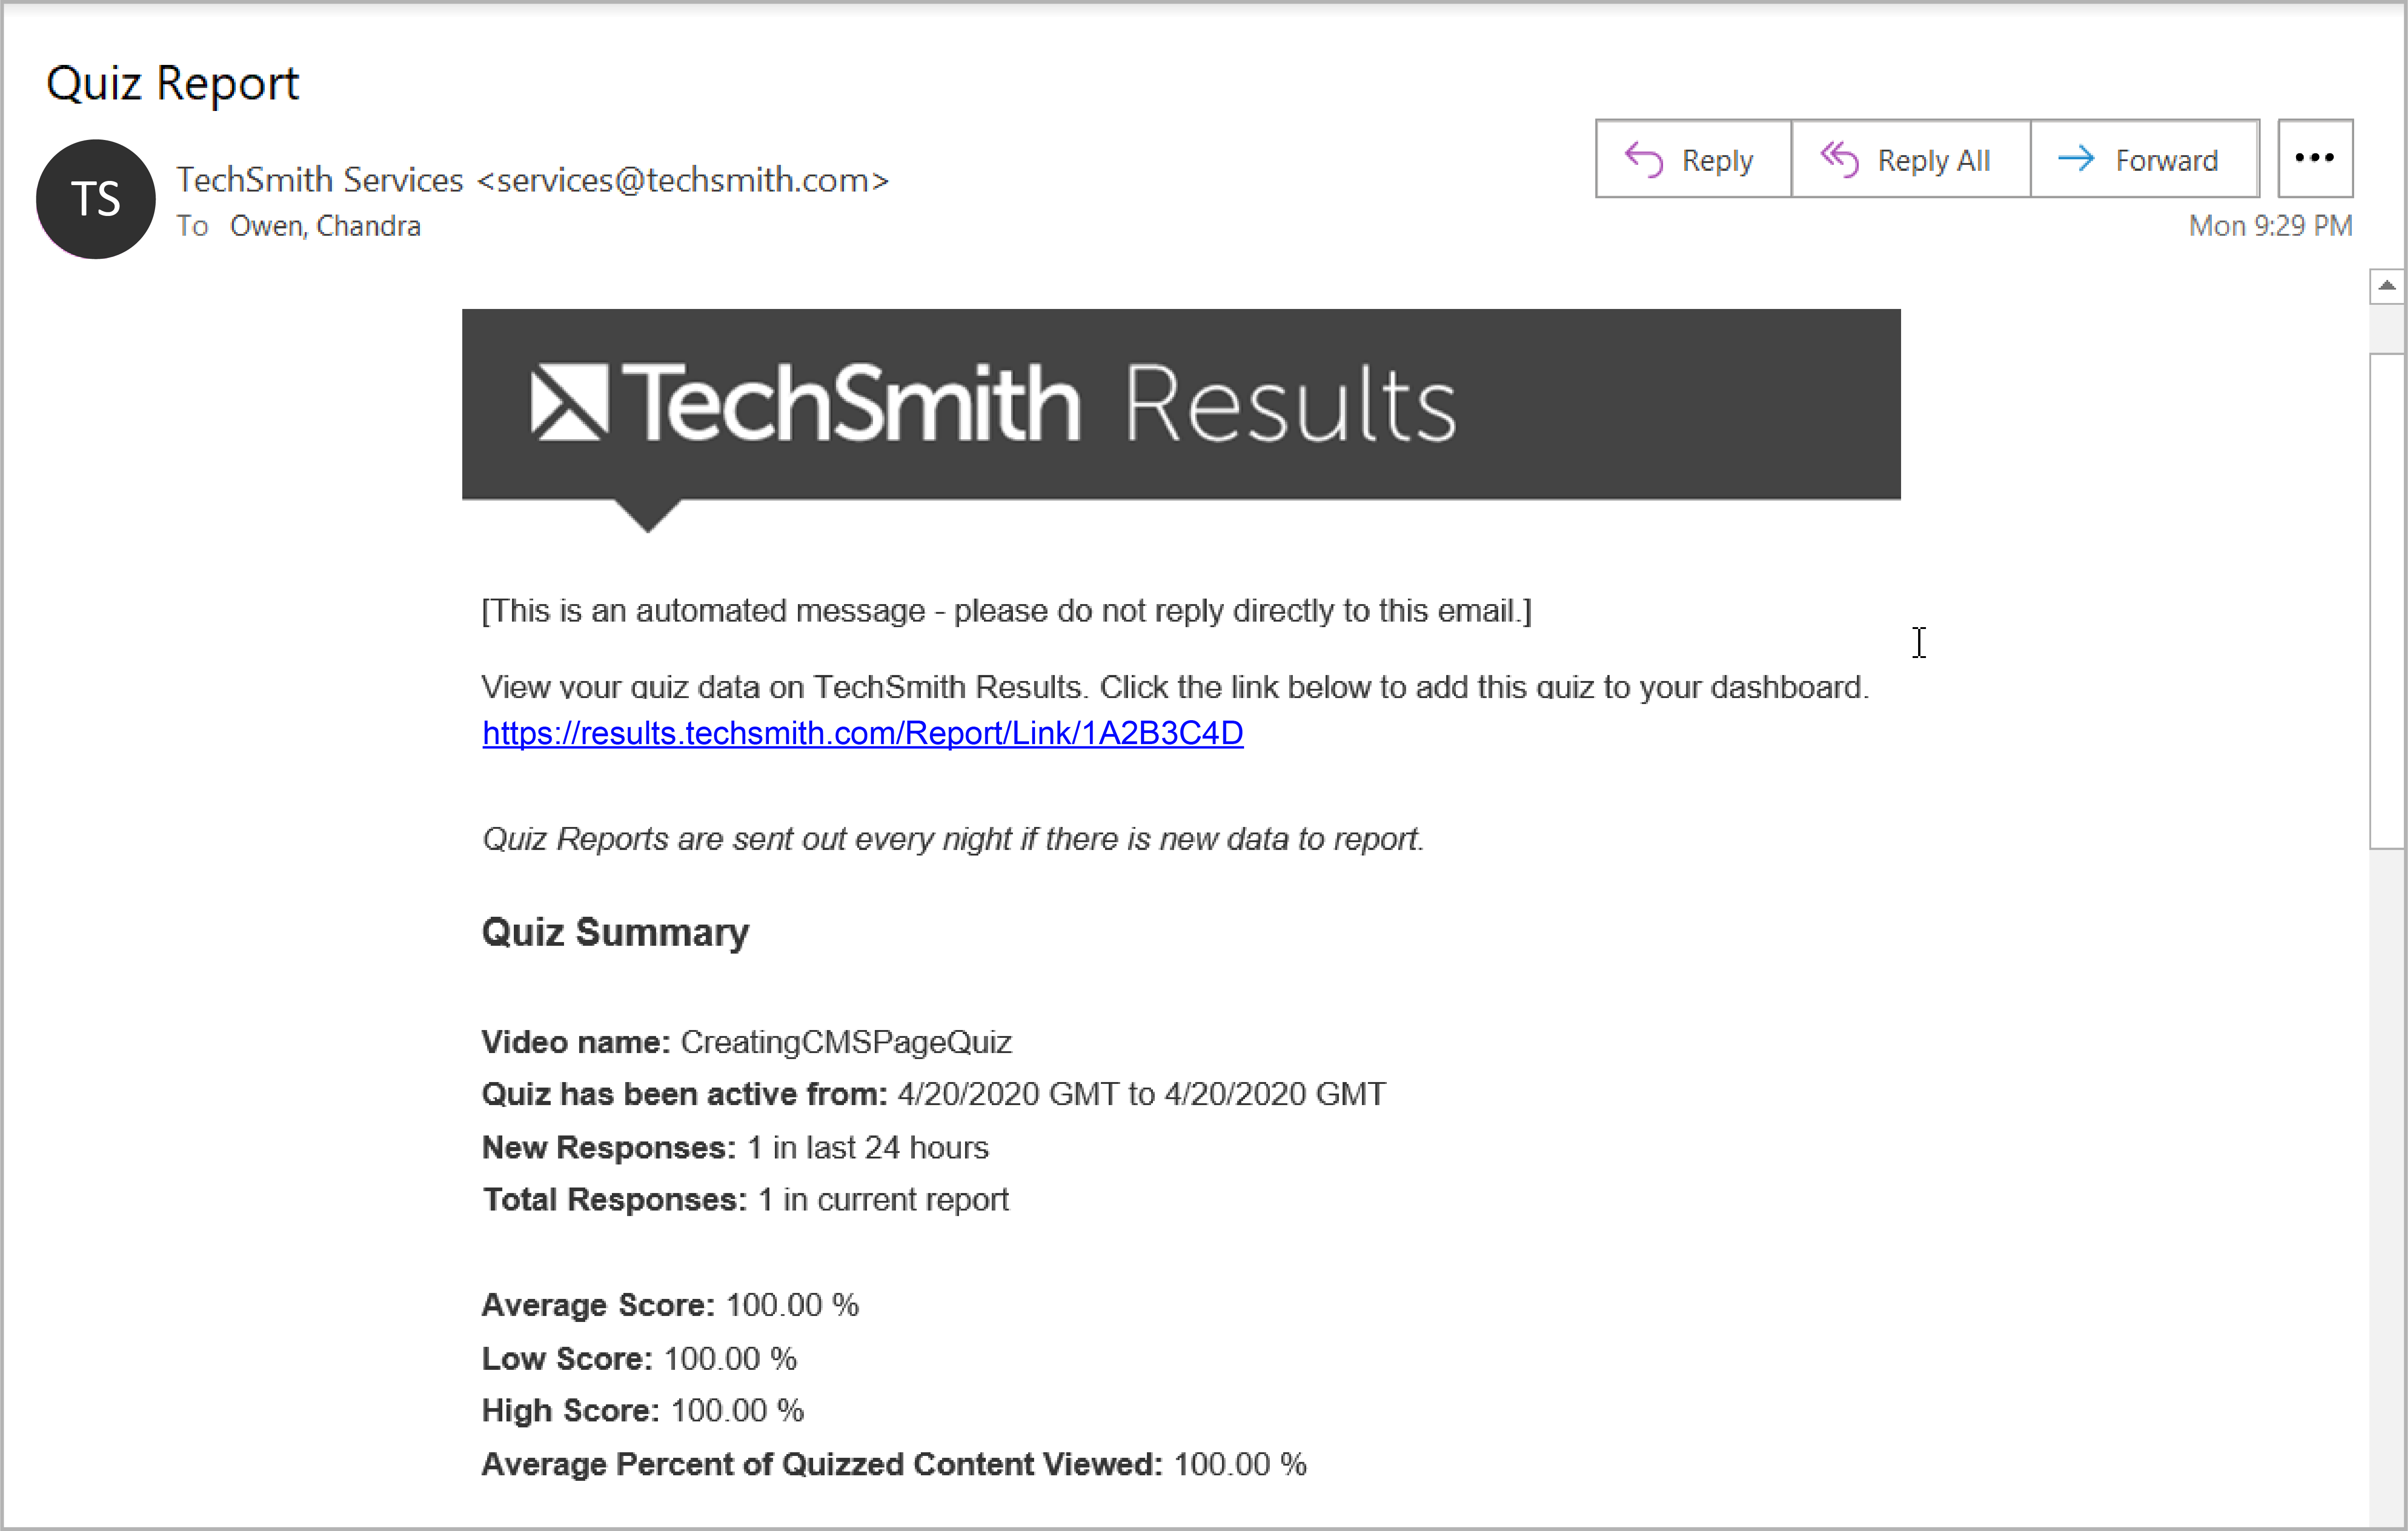 Email showing the results from the days quiz